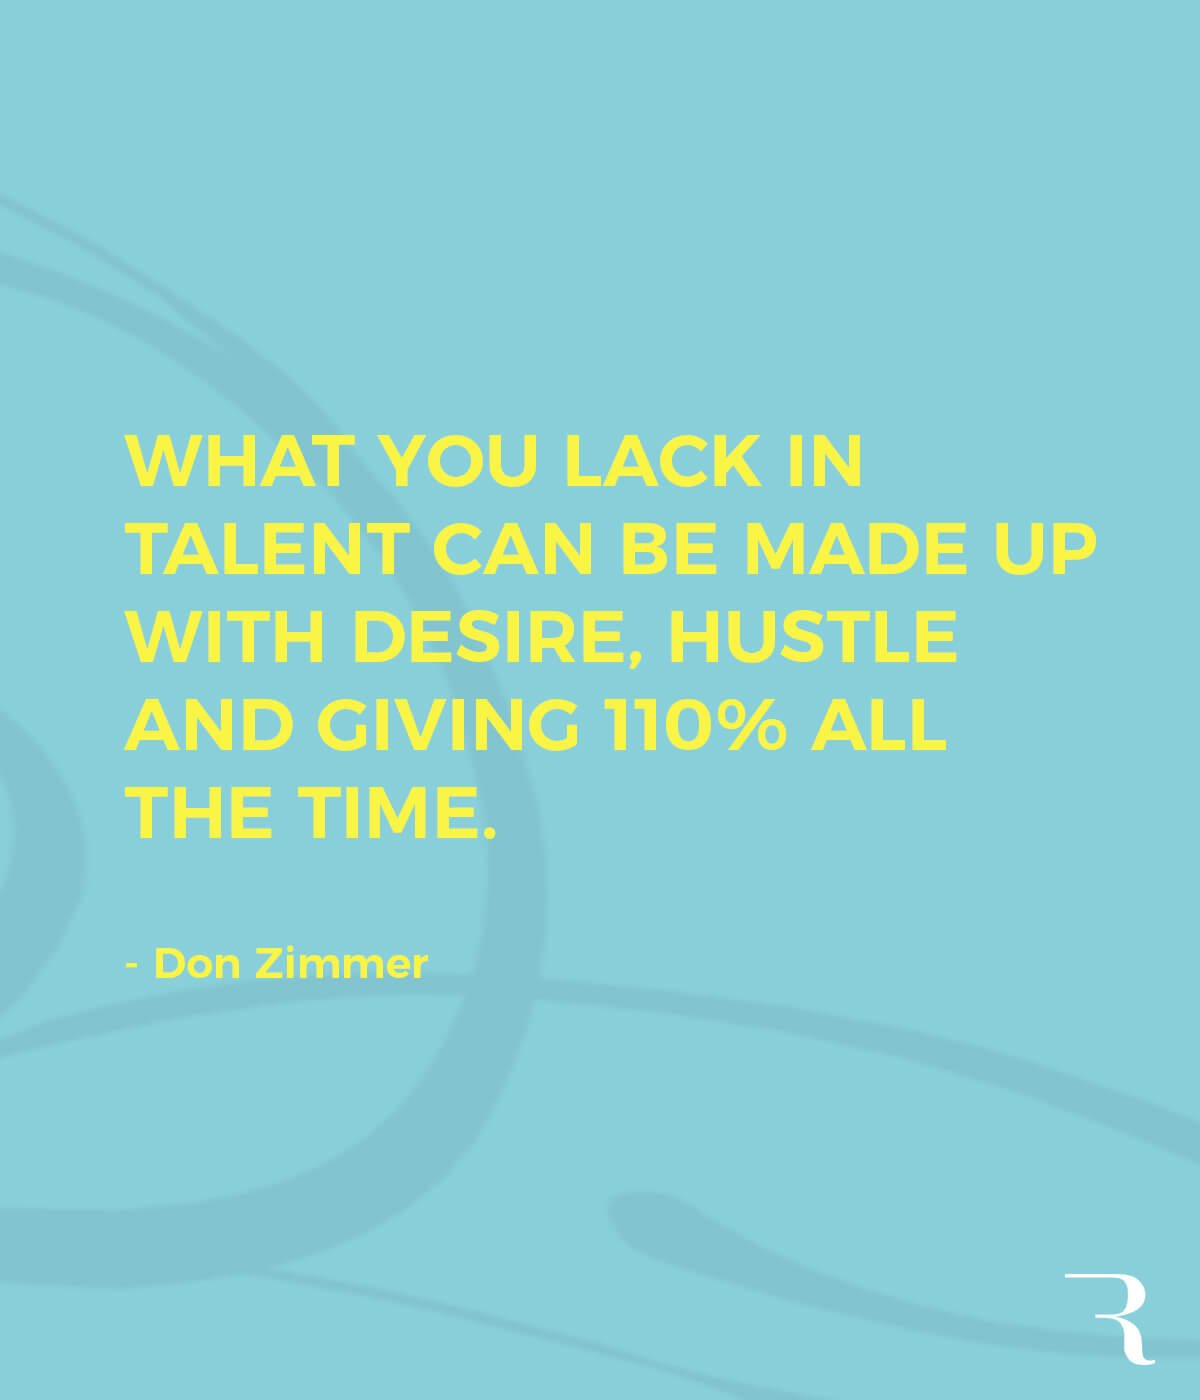 """Motivational Quotes: """"What you lack in talent can be made up with desire, hustle and giving 110% all the time."""" 112 Motivational Quotes to Be a Better Entrepreneur"""